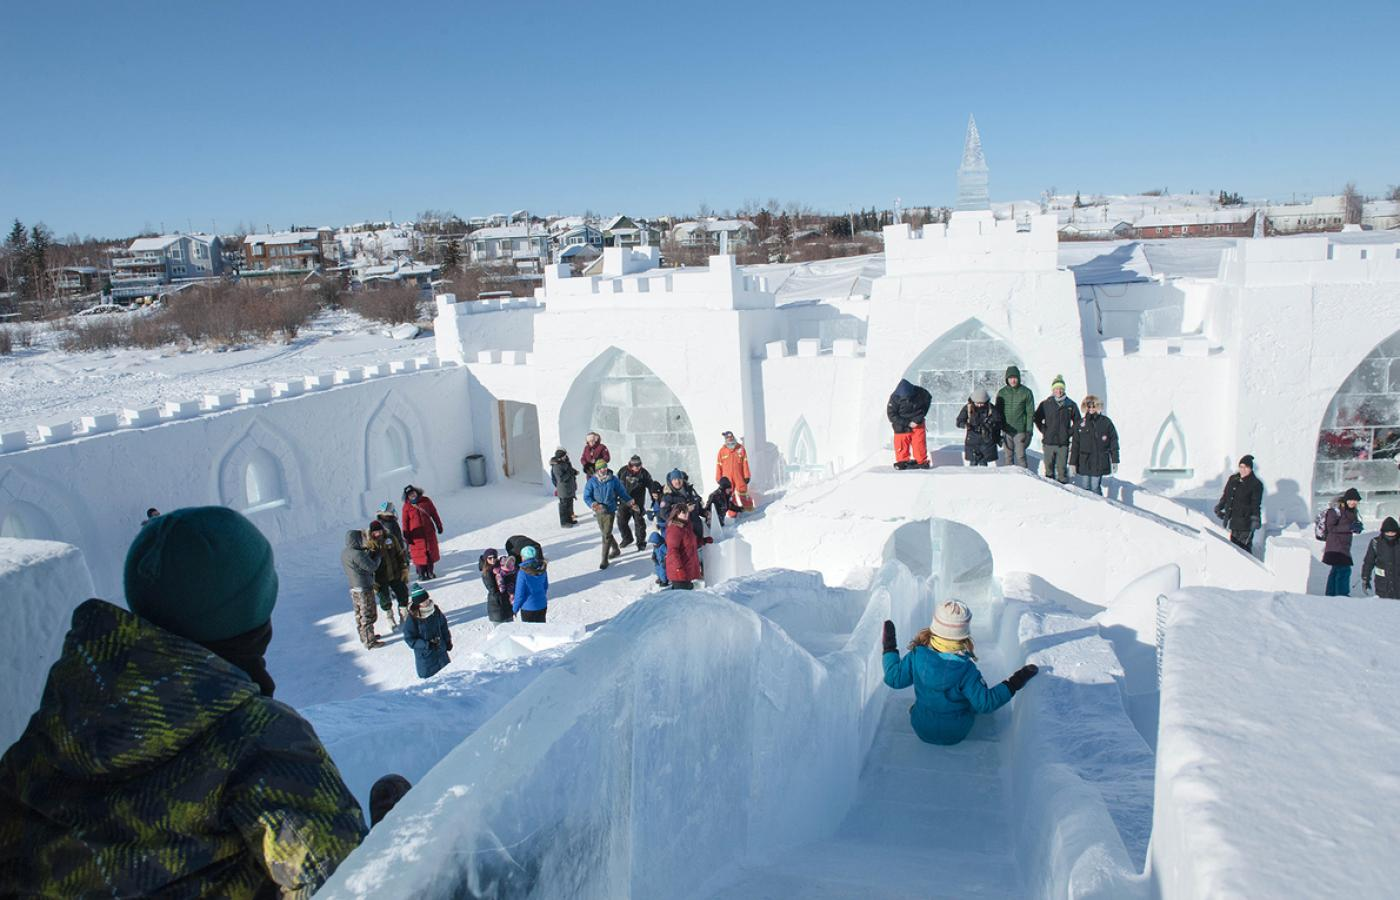 The SnowKing and his royal crew build a snowcastle on Yellowknife Bay each March.